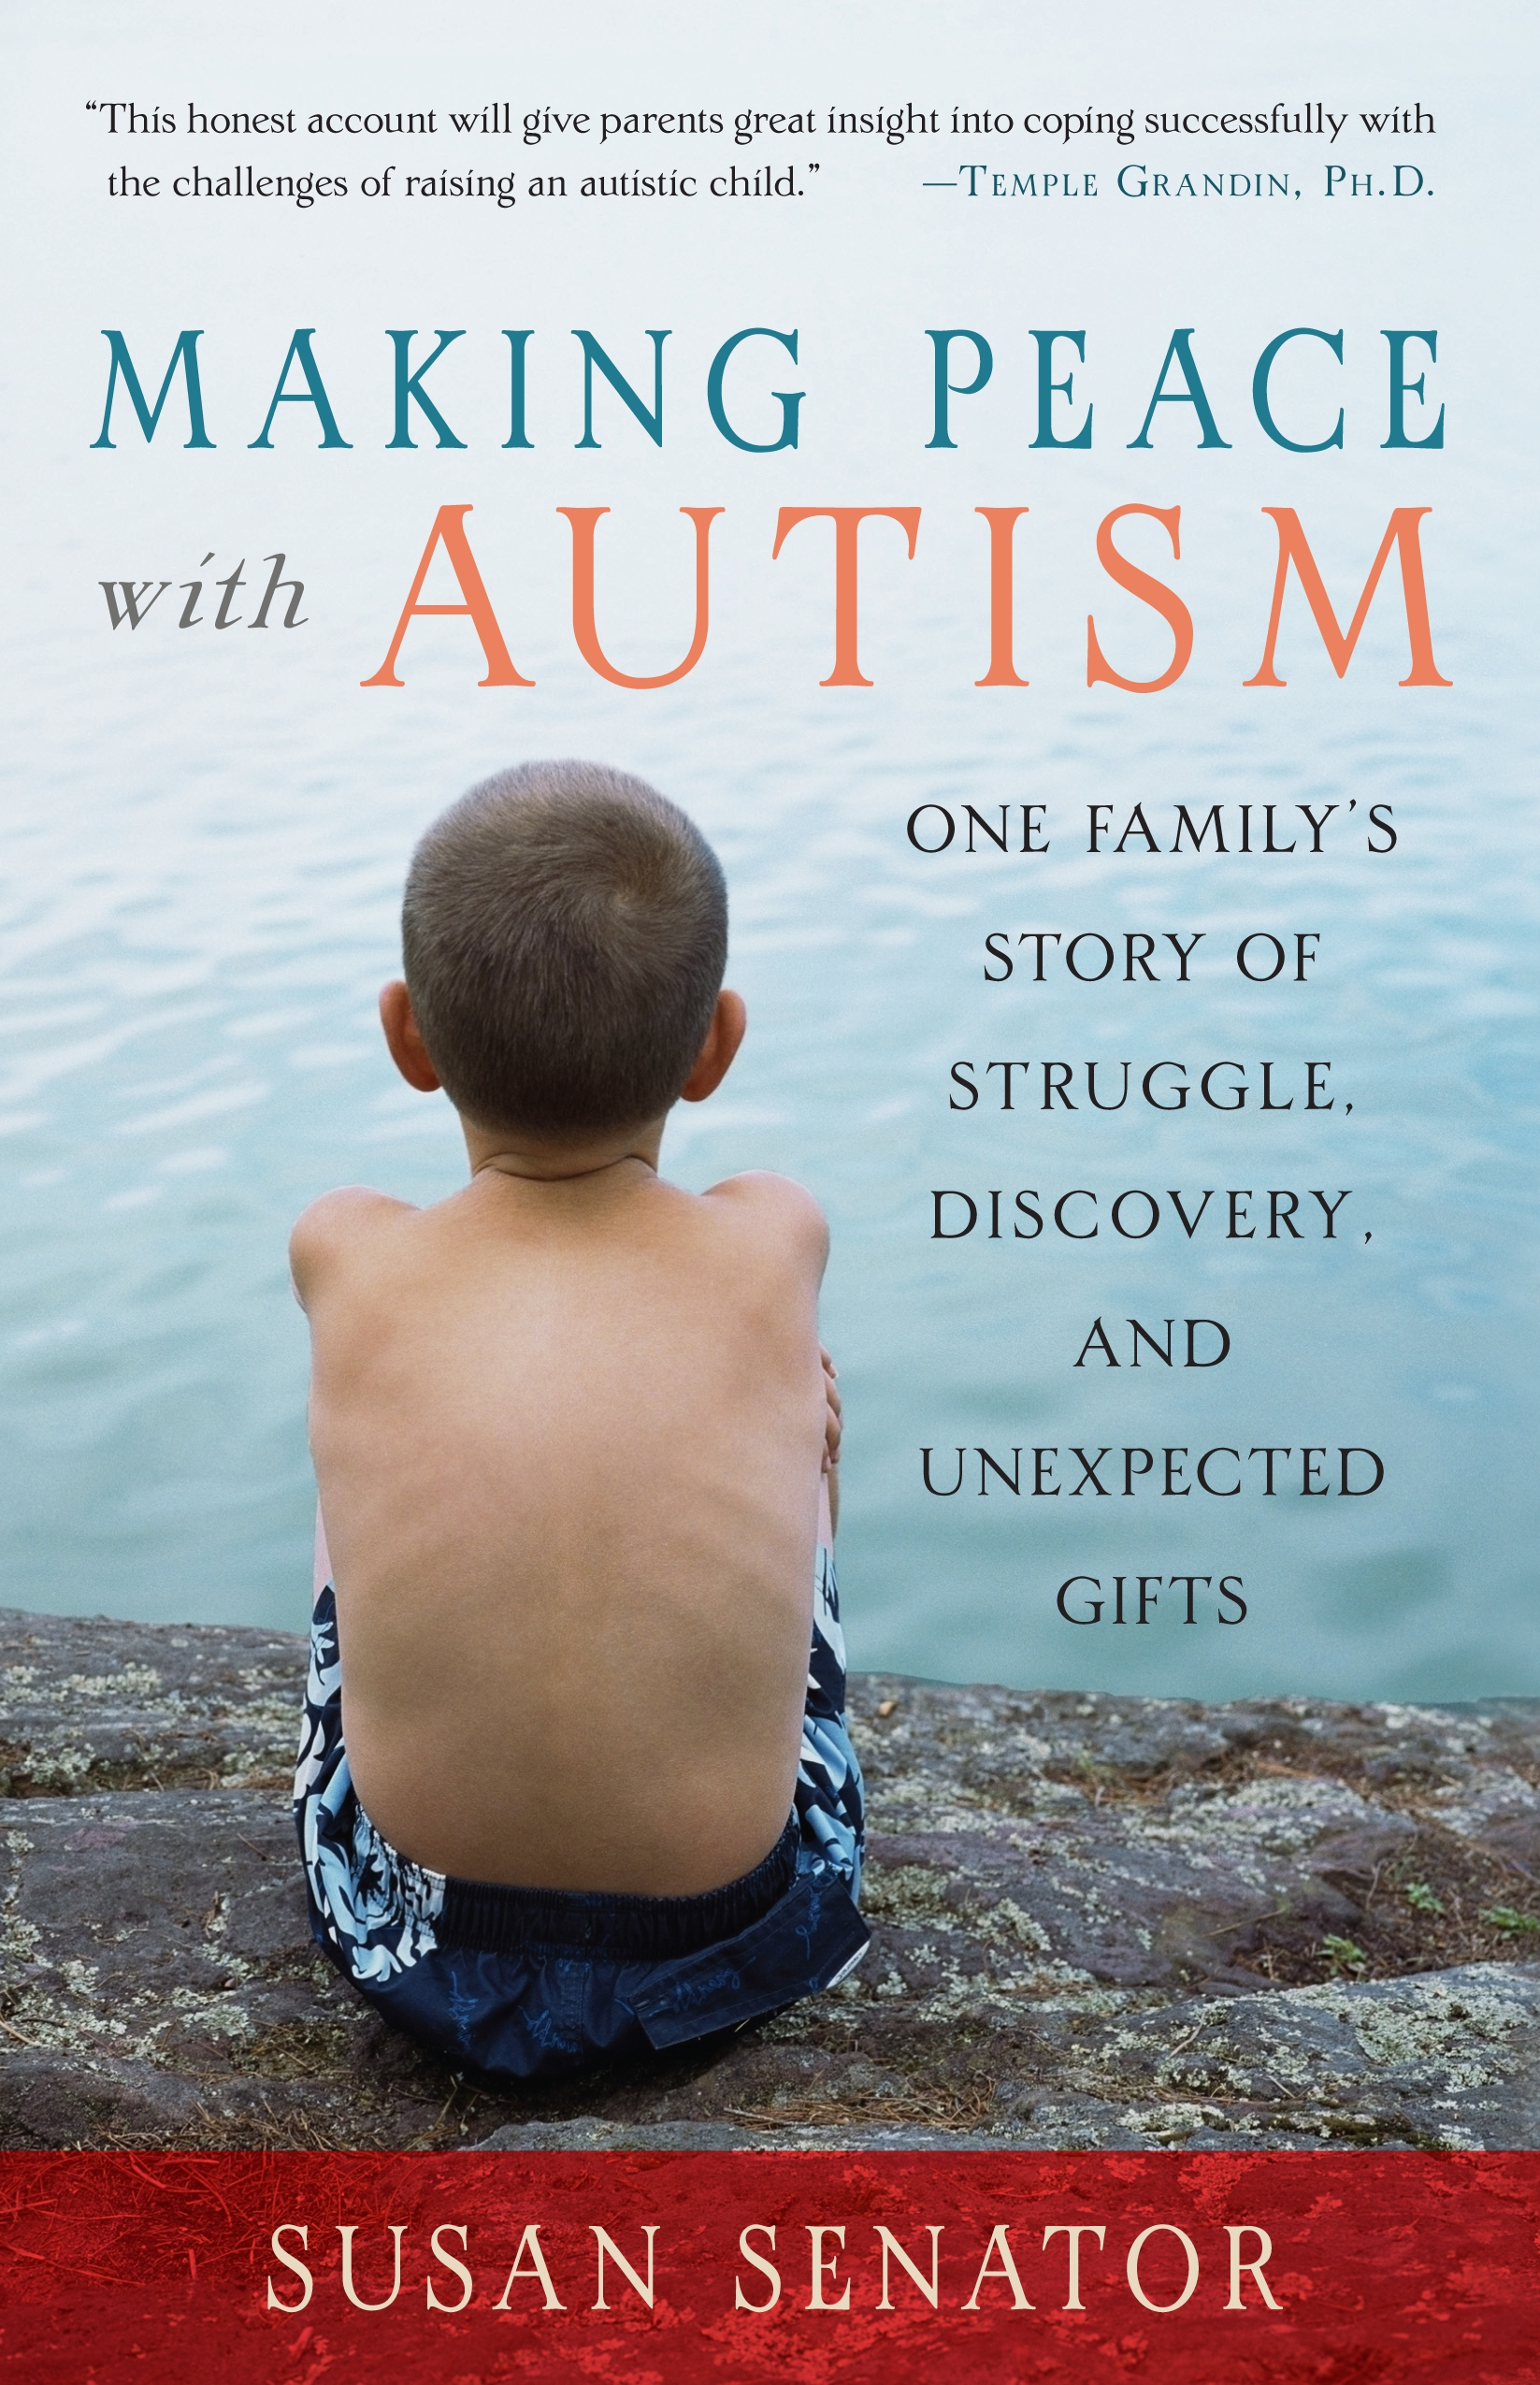 Making Peace with Autism: One Family's Story of Struggle, Discovery, and Unexpected Gifts By: Susan Senator